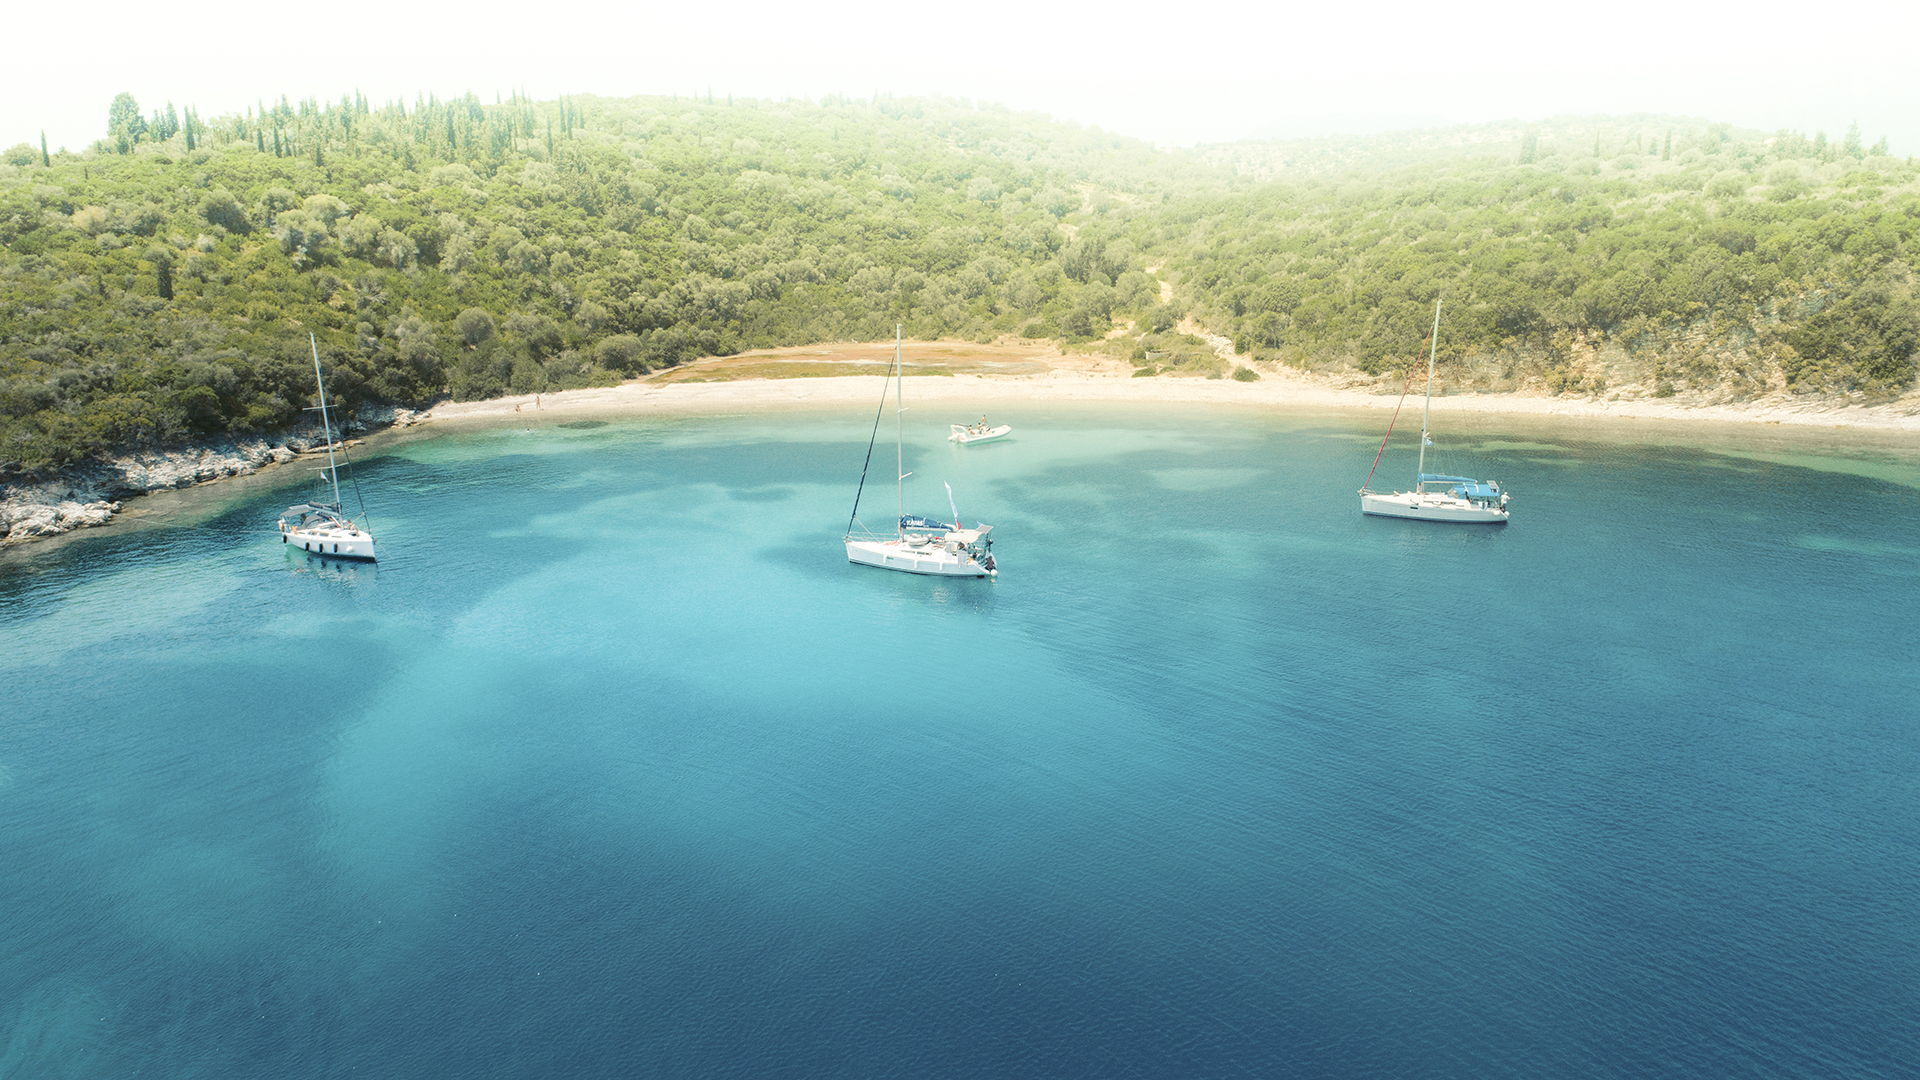 By hiring a sailing boat and skipper, you can set sail from Nydri and explore all those gorgeous beaches